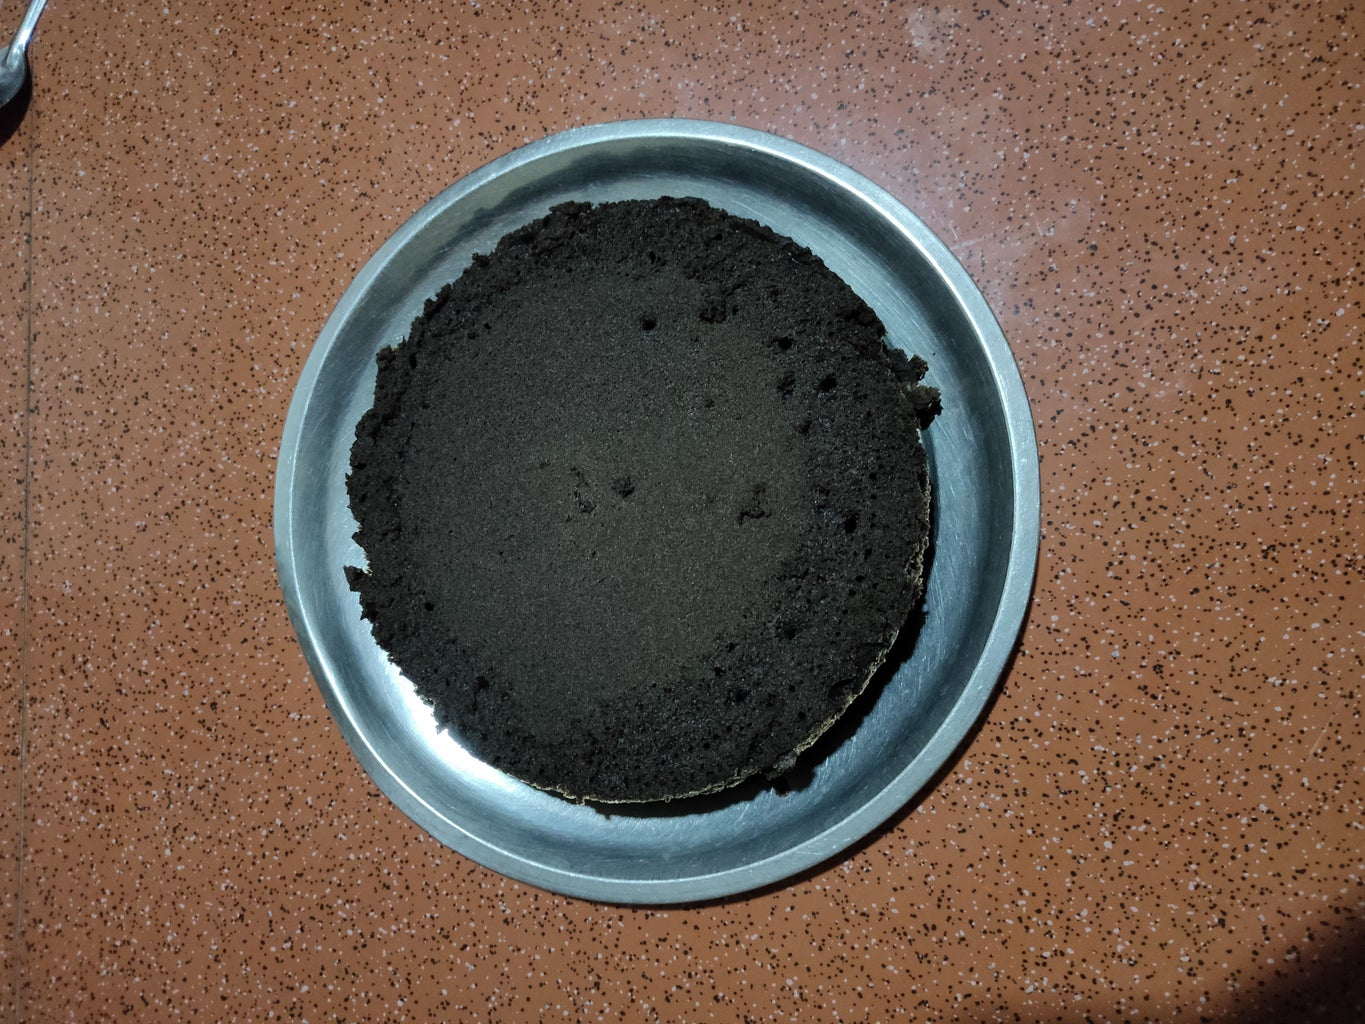 Bake the Mixture and Release the Cake